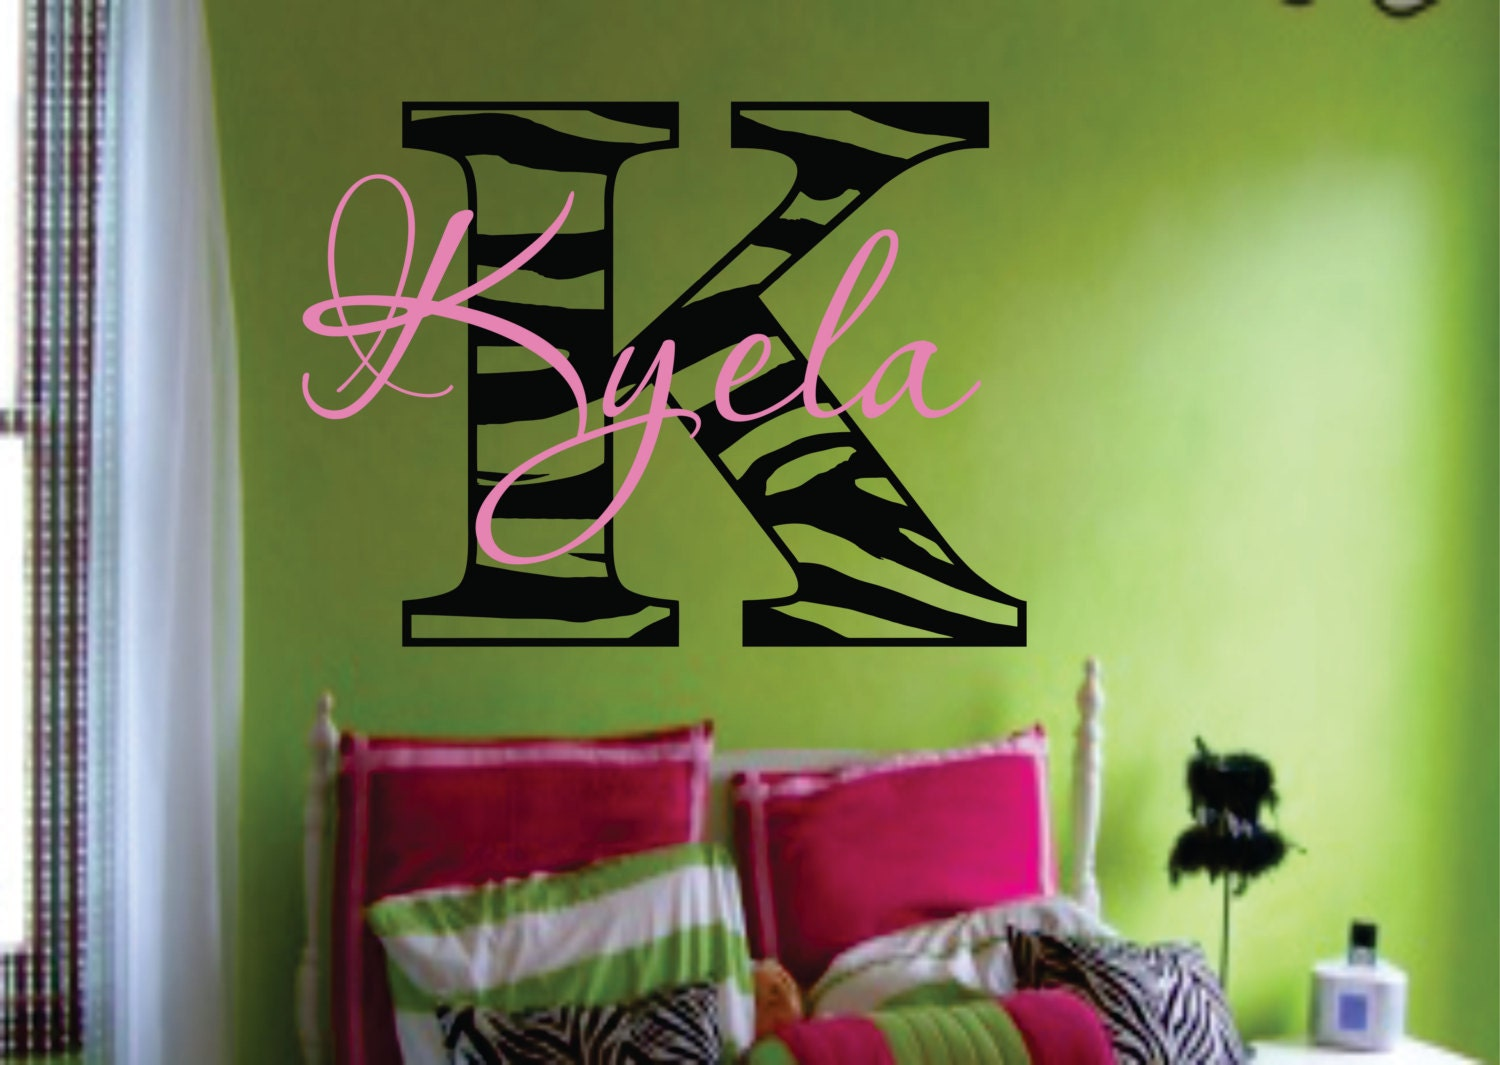 Zebra name decal Modern Chic Vinyl Wall Decal by SignJunkies